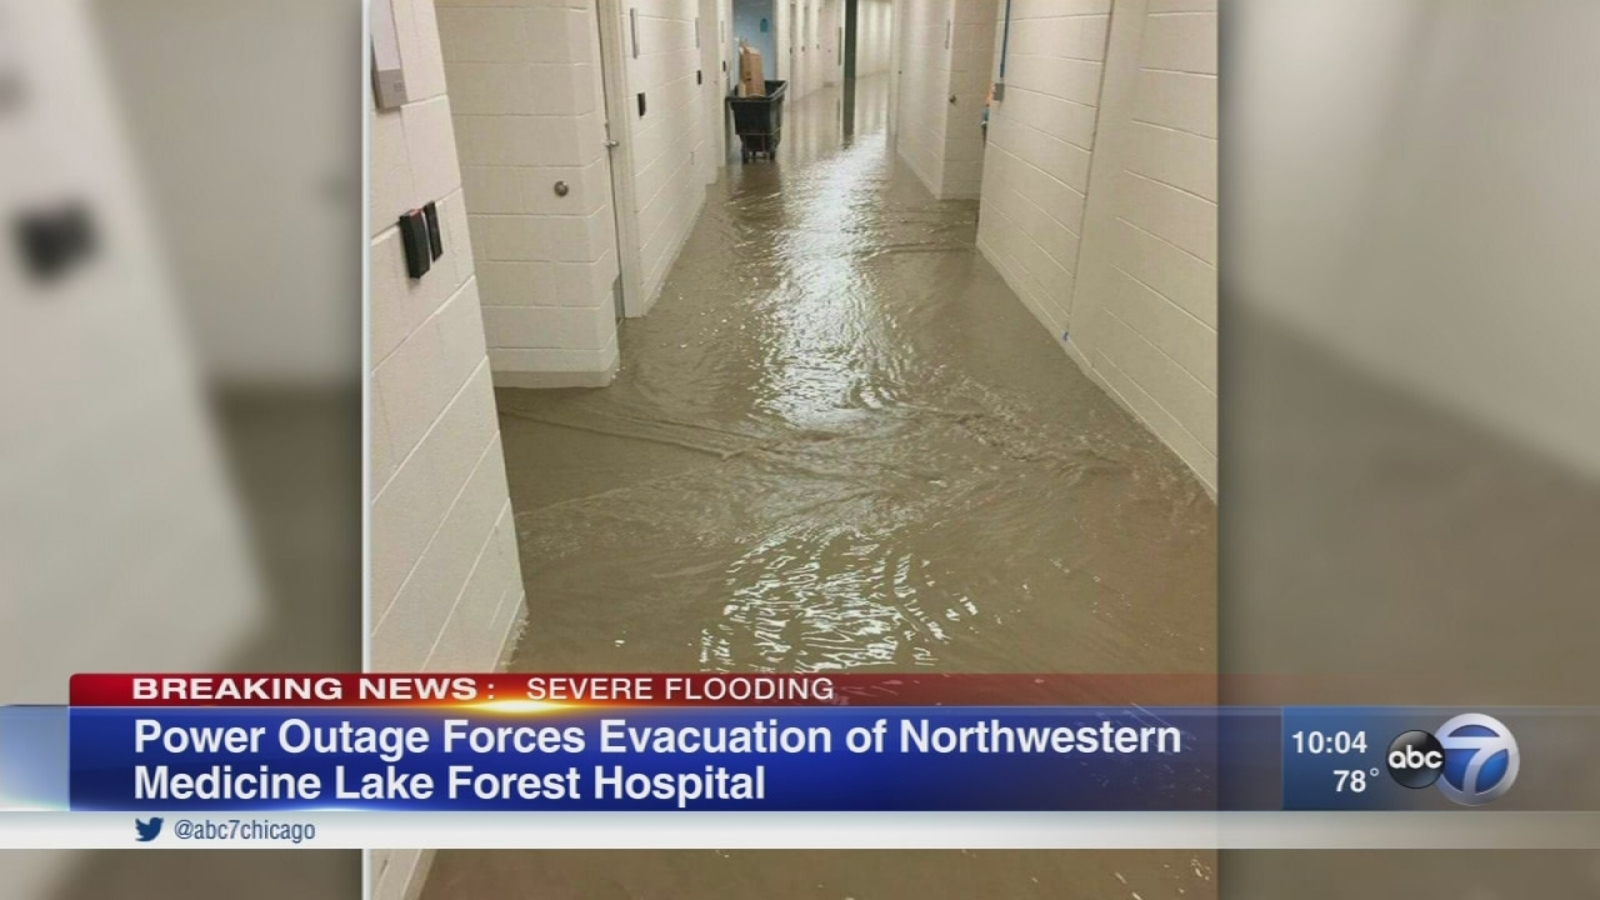 Power outage forces evacuation of Lake Forest Hospital